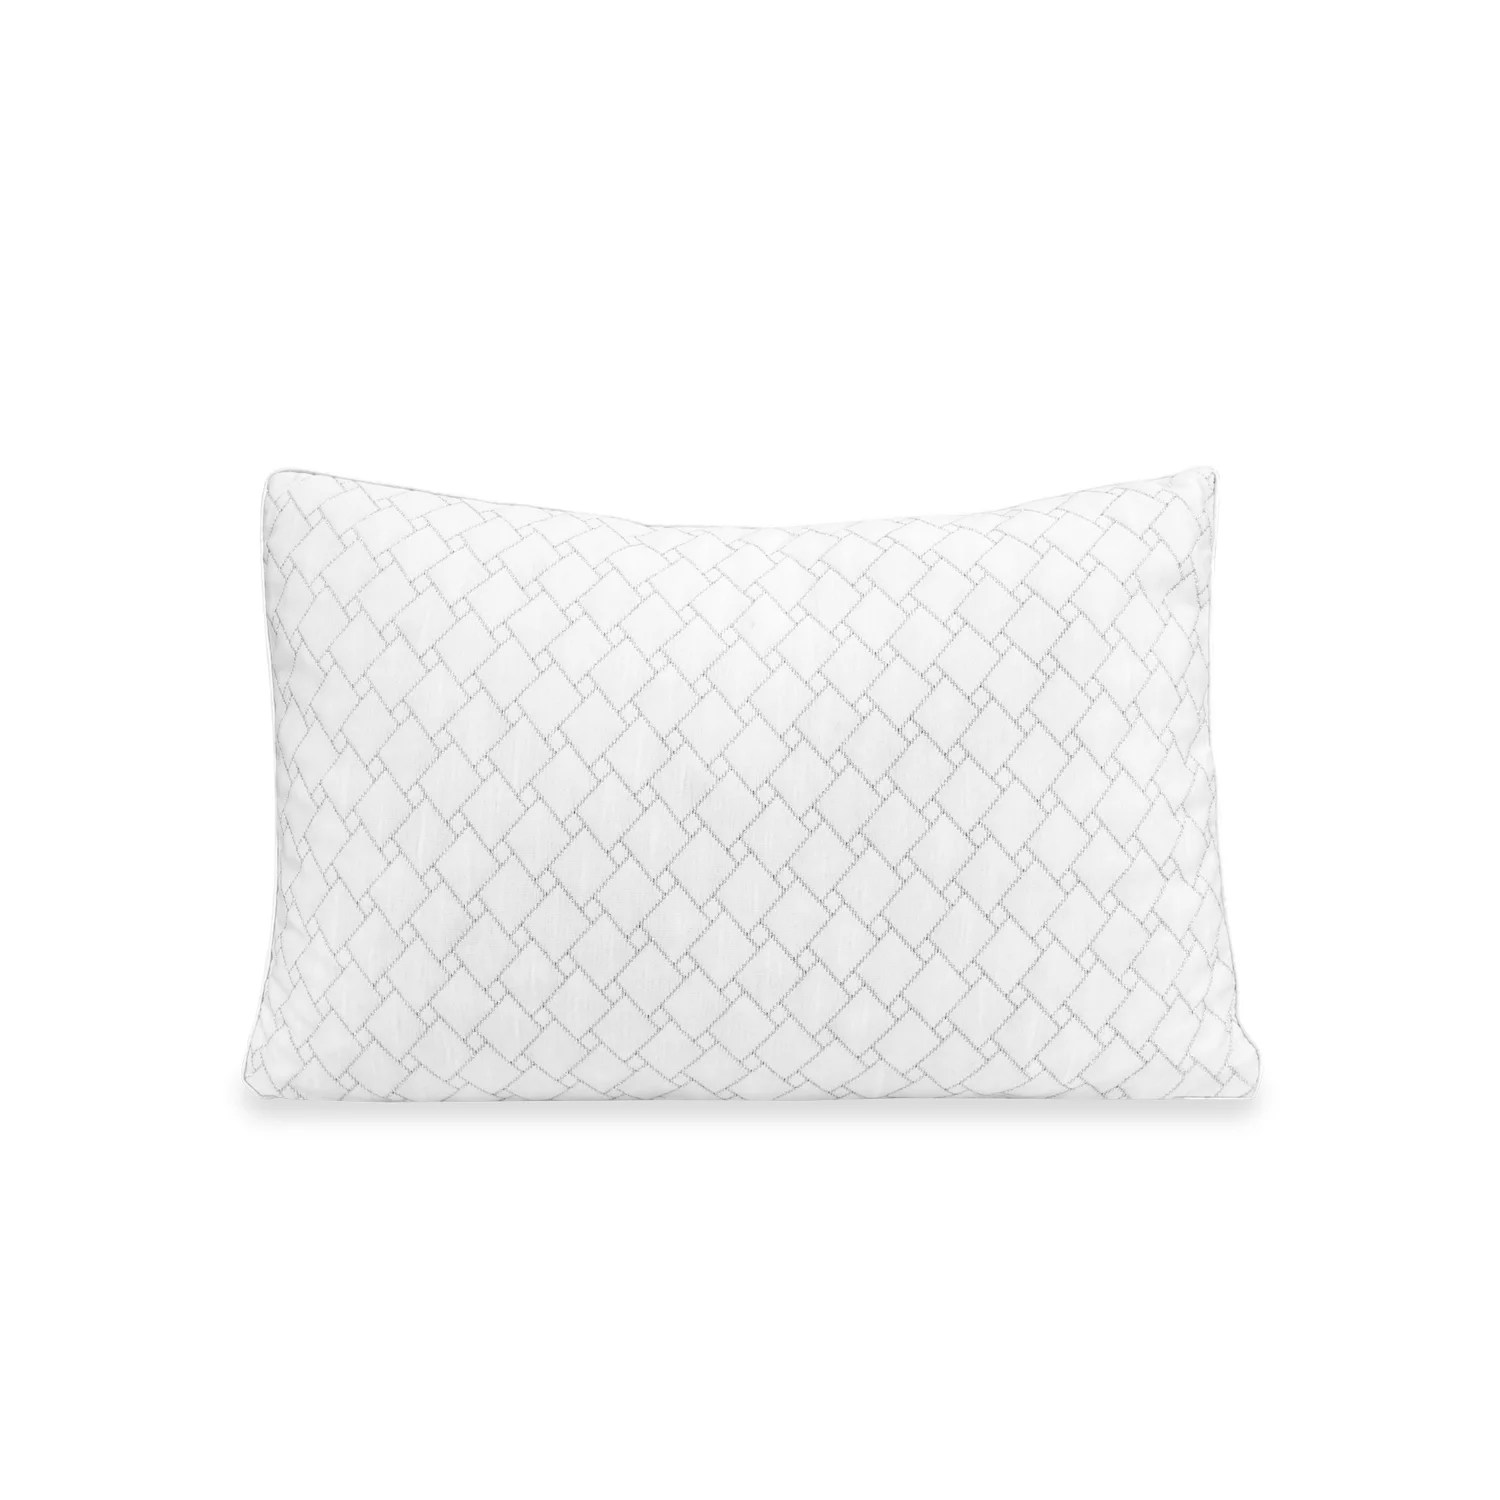 sensorpedic wellness collection supportive memory foam cluster pillow with charcoal infused cover